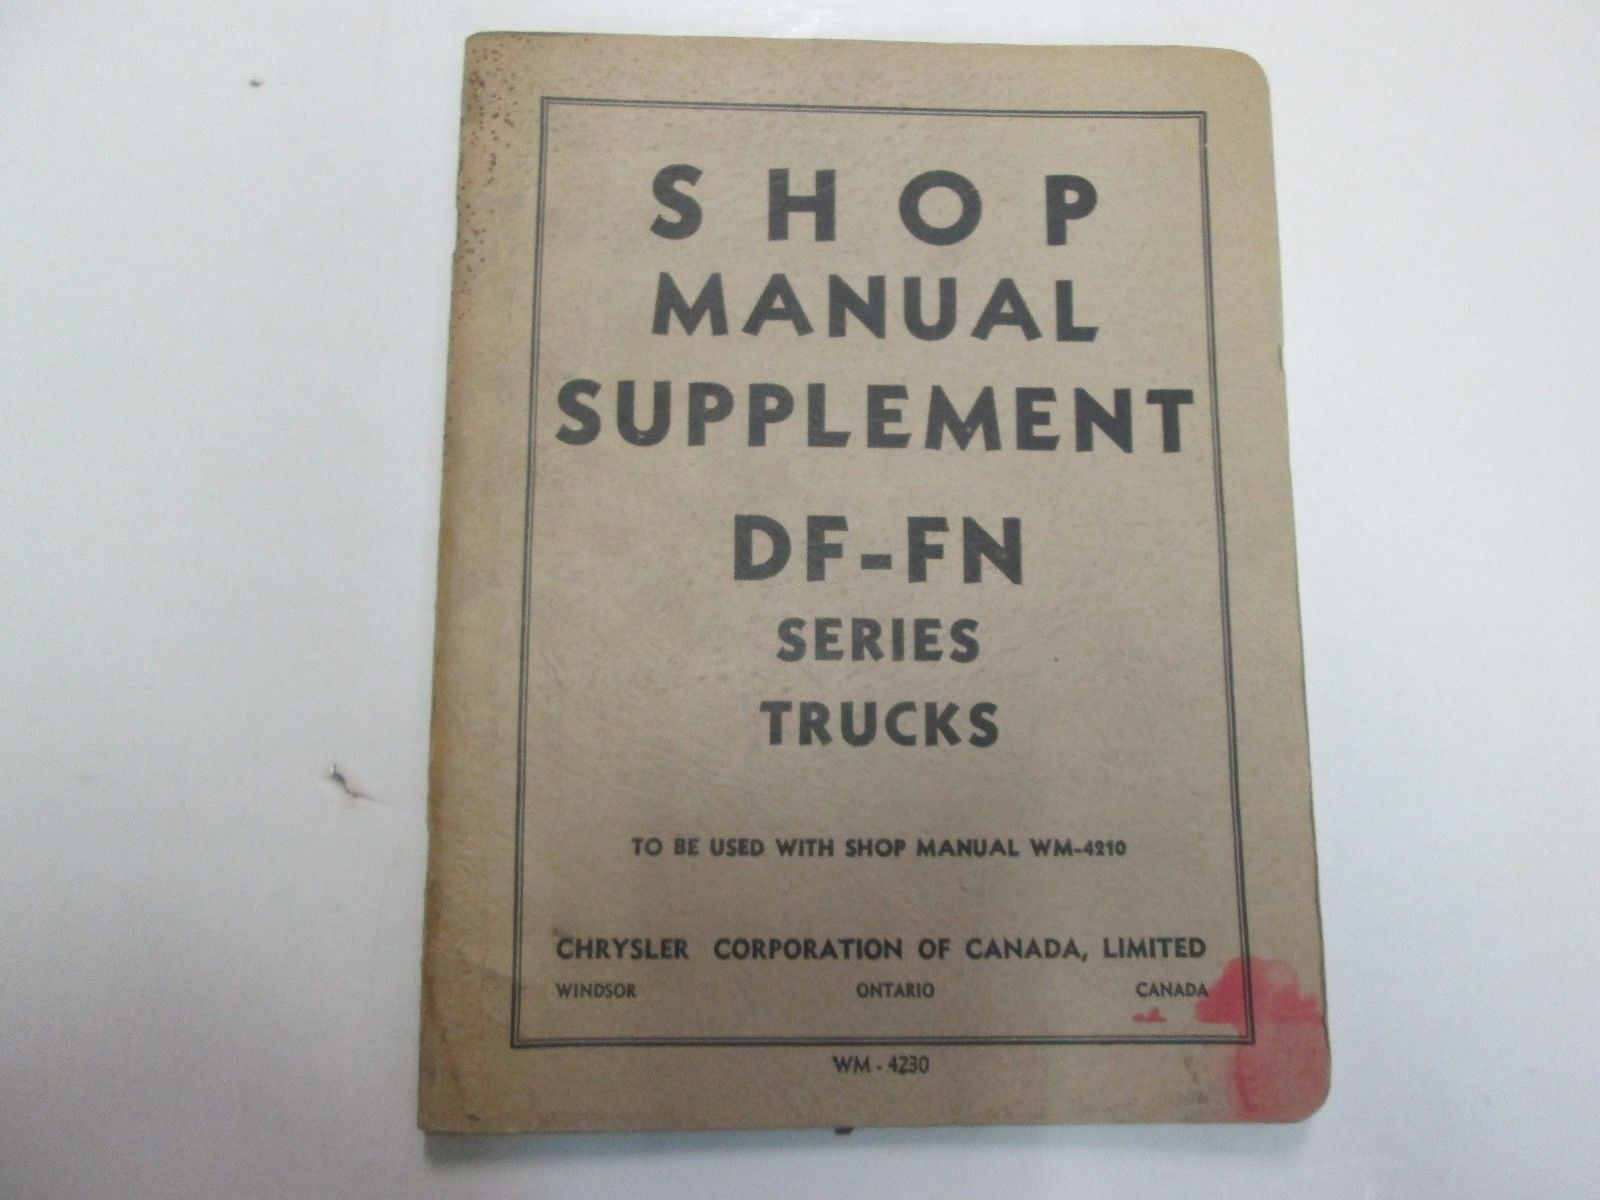 1950s Chrysler DF FN Truck Series Service Shop Manual Supplement STAINED WORN